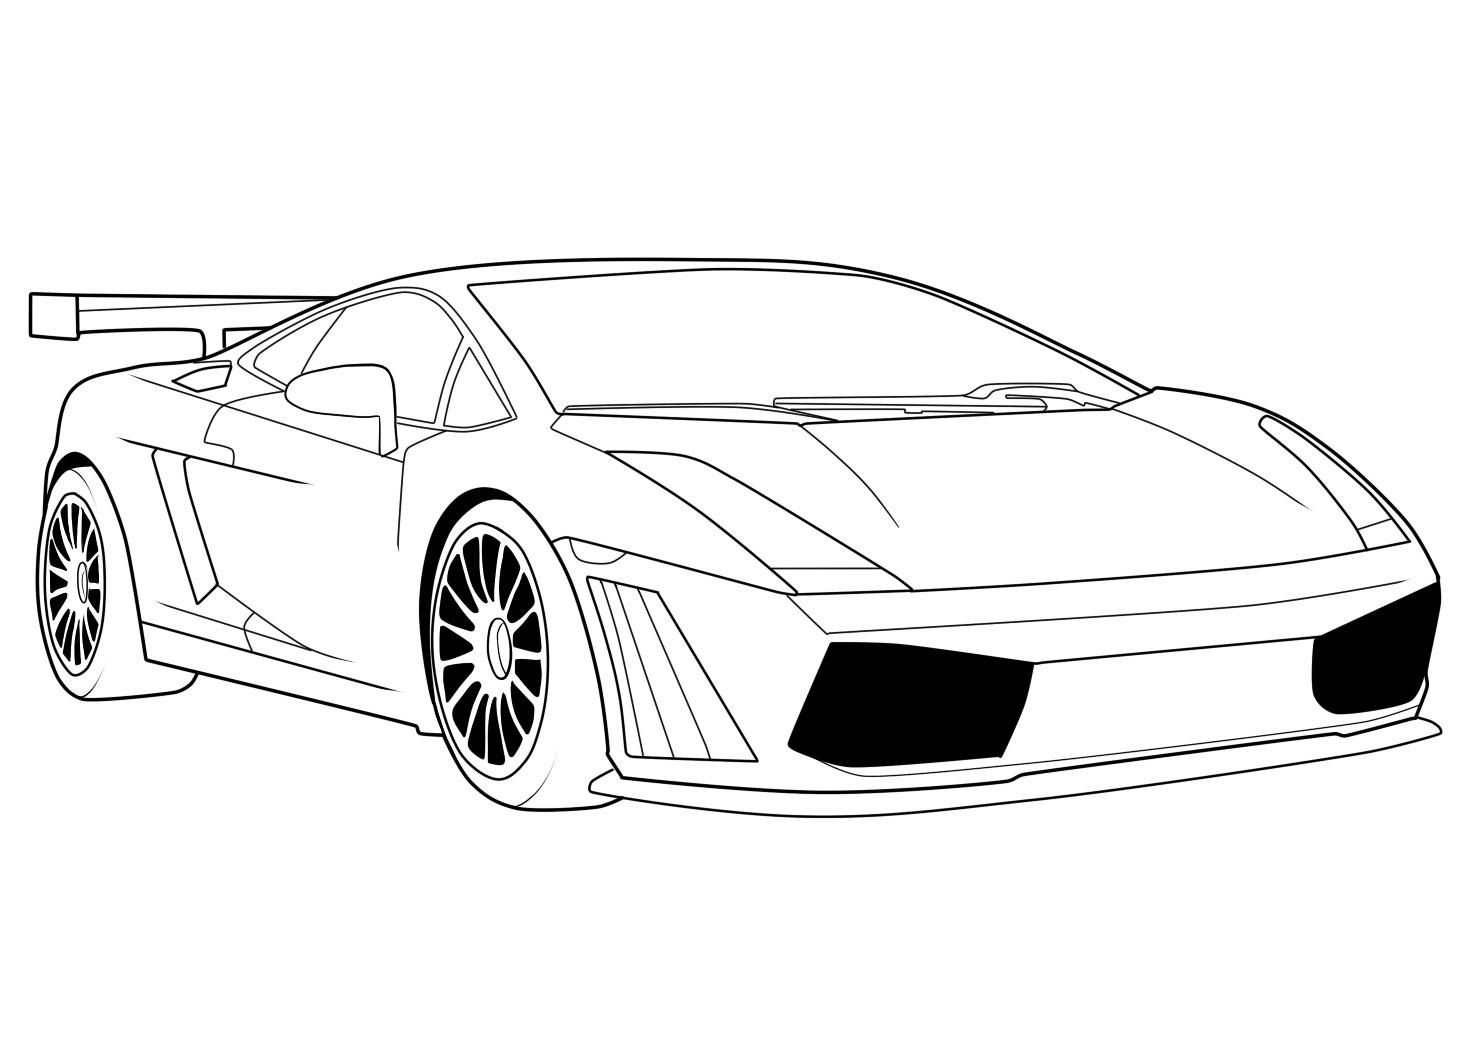 Lamborghini coloring pages to print coloring home for Lamborghini coloring pages to print